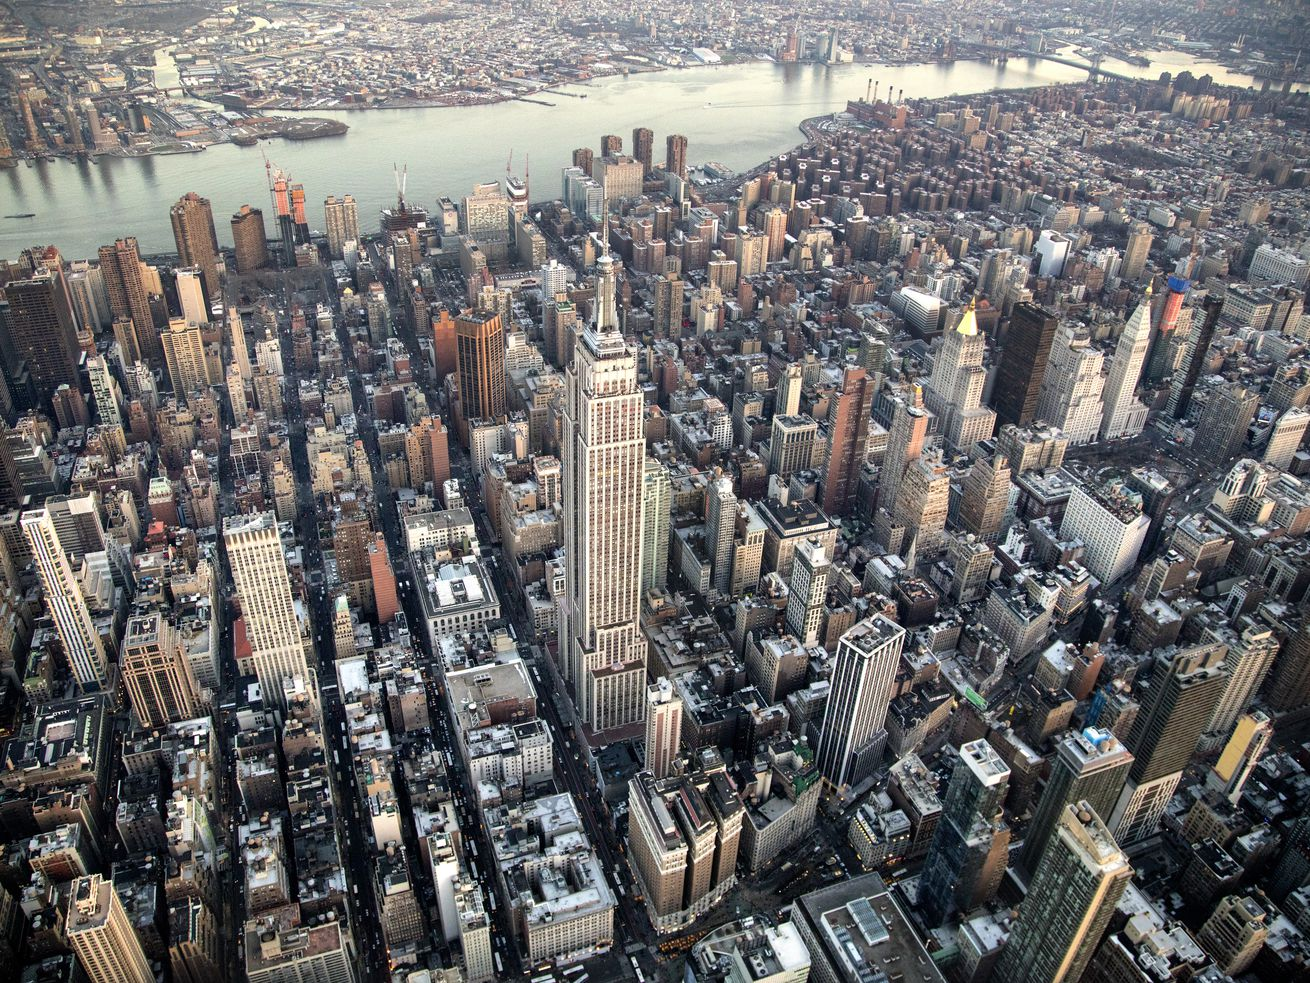 No, Manhattan Home Prices Are Not Plummeting